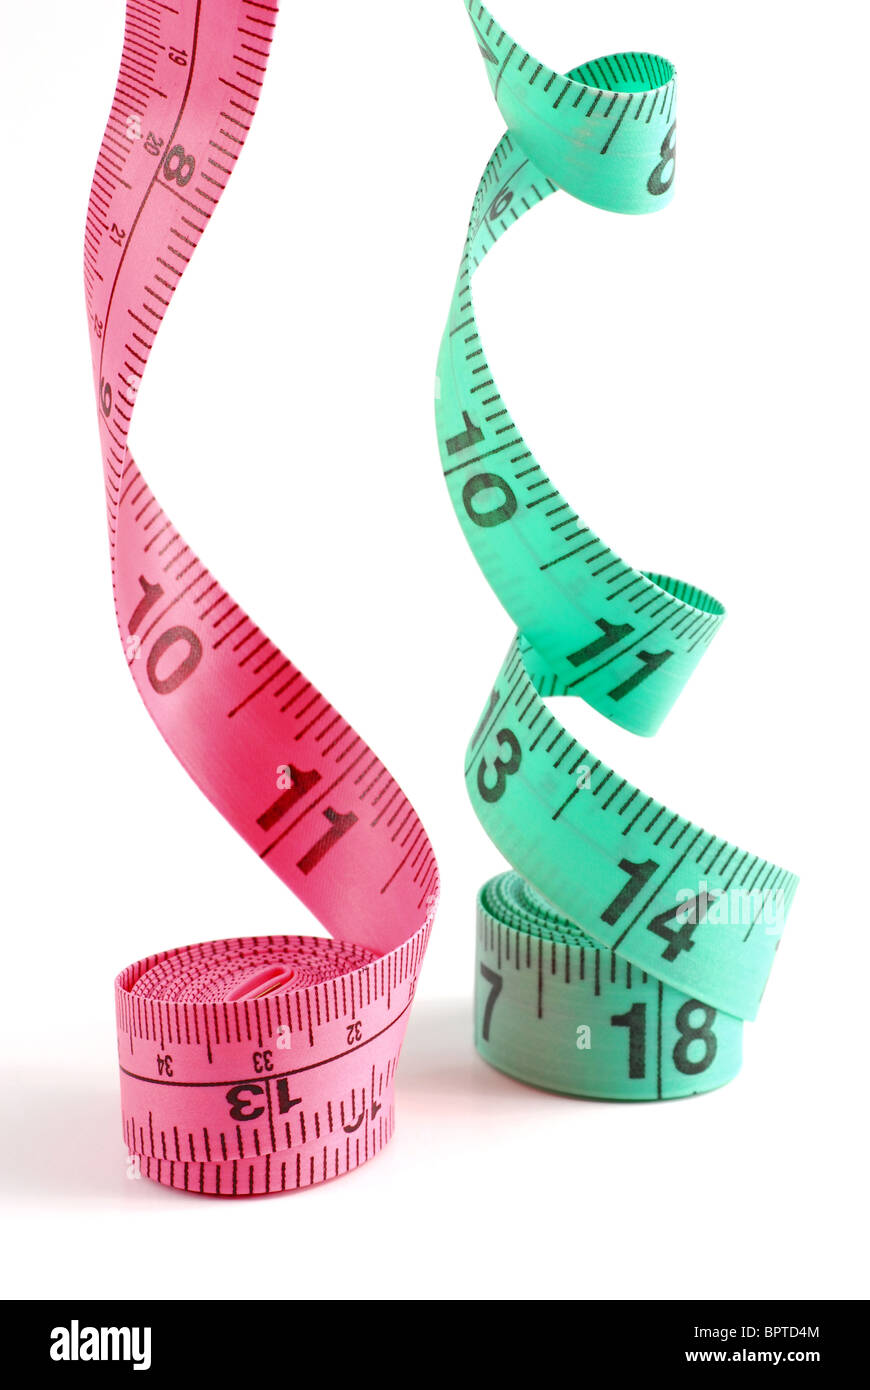 Two inch tape stock photos two inch tape stock images alamy two tape measures against white background stock image ccuart Gallery